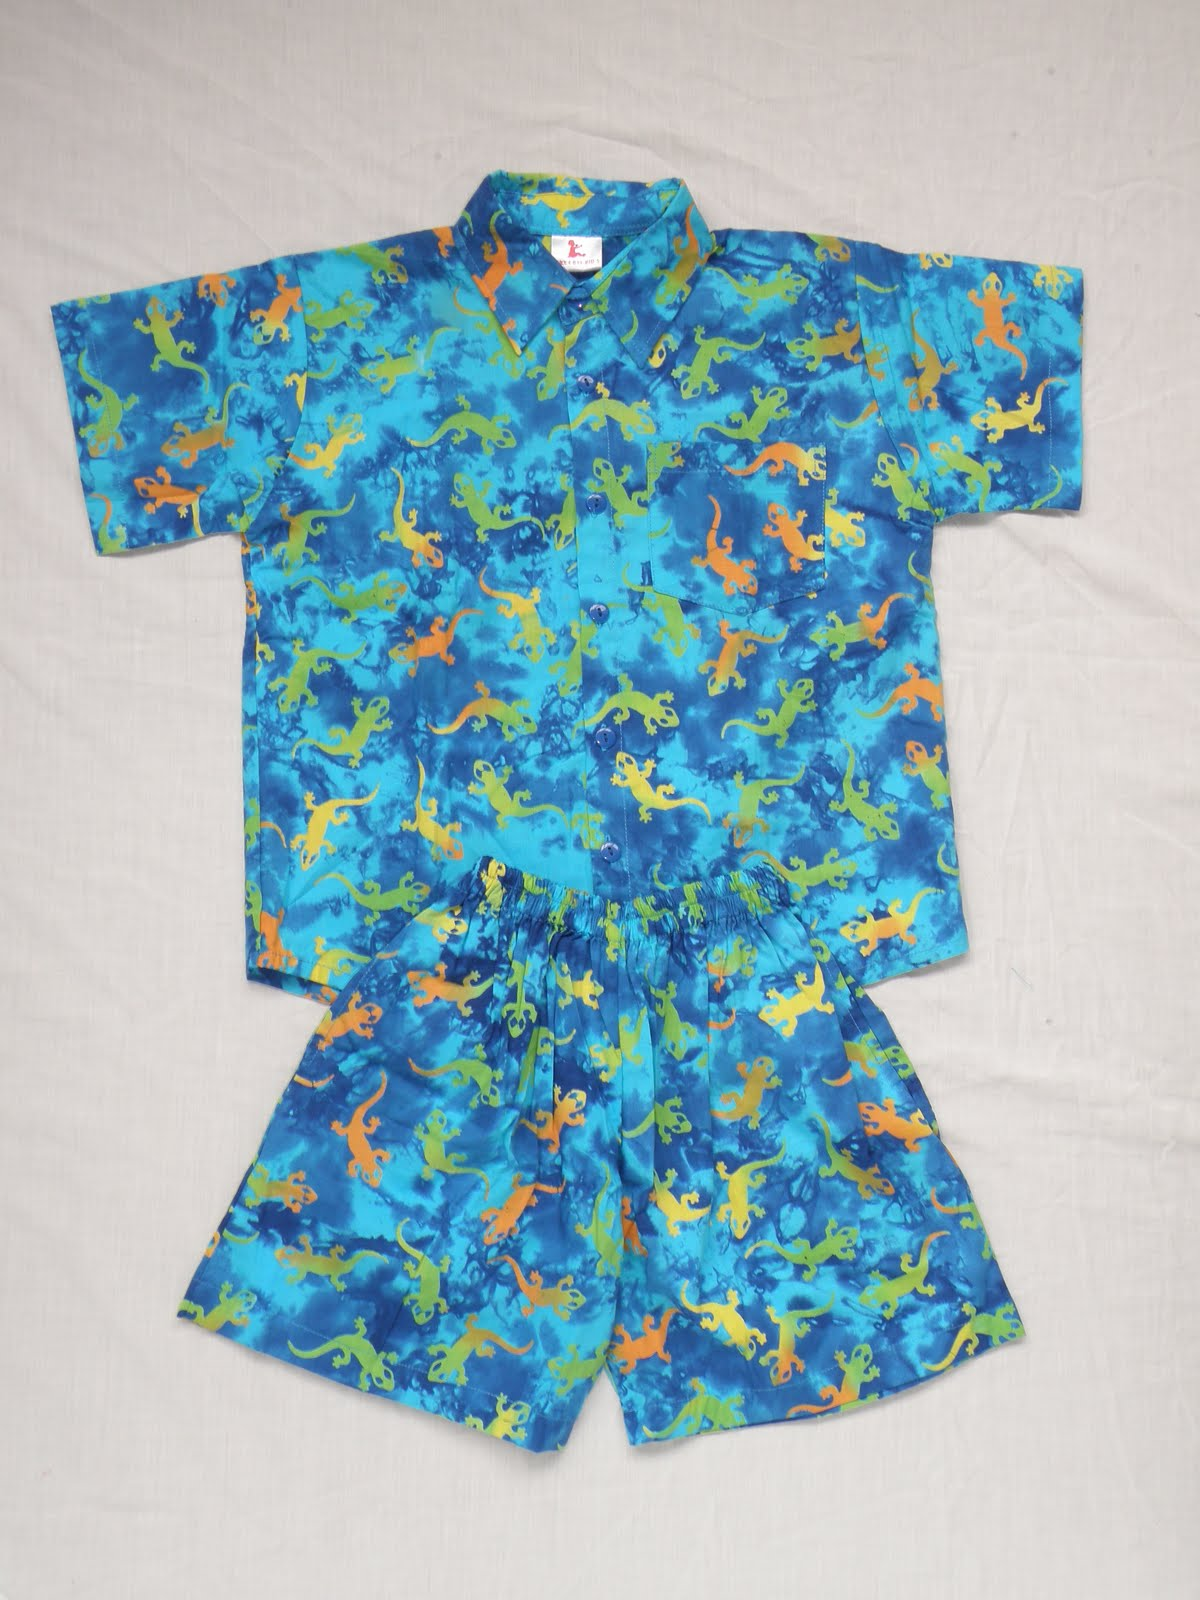 Frangipani Funky Matching Shirt And Shorts For The Little